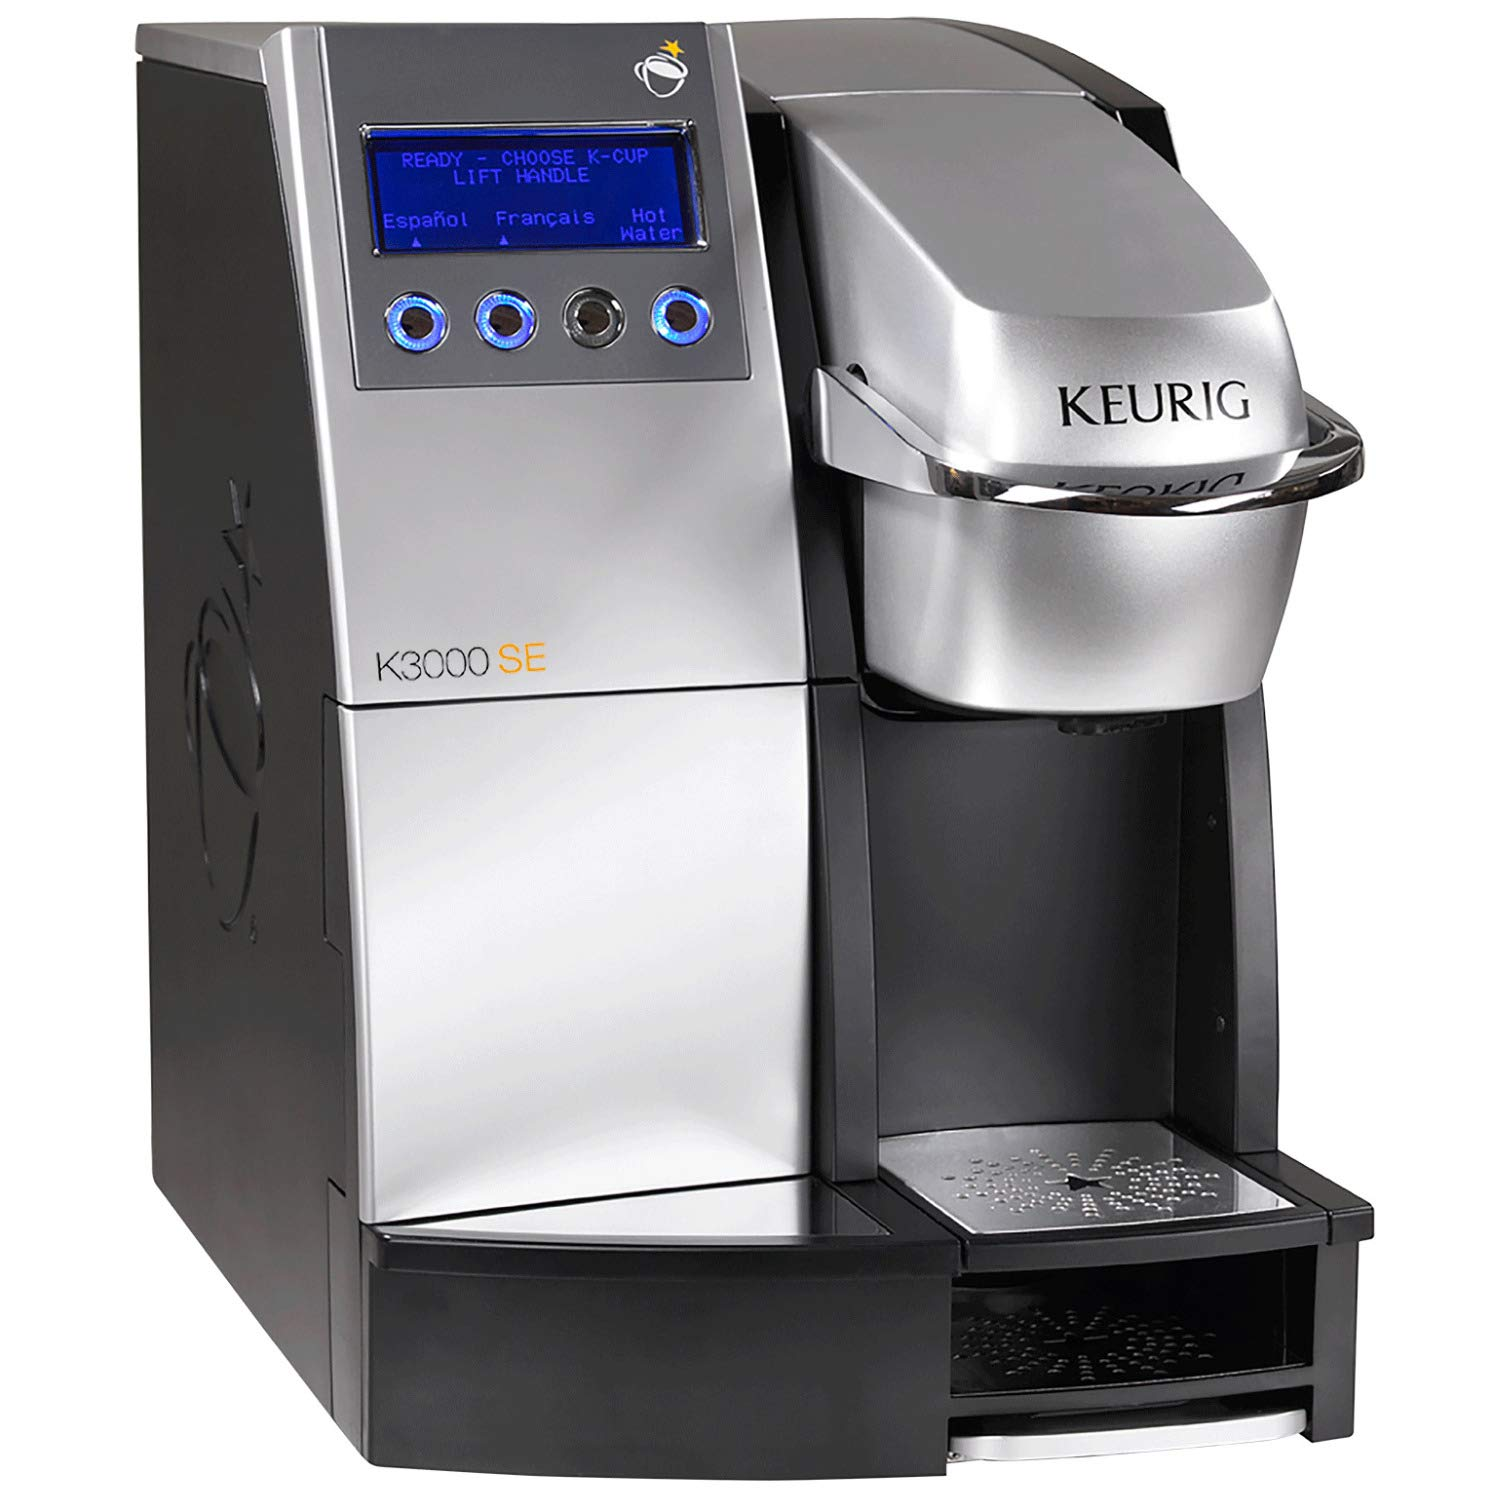 Keurig K 3000 SE Coffee Commercial Single Cup Office Brewing System